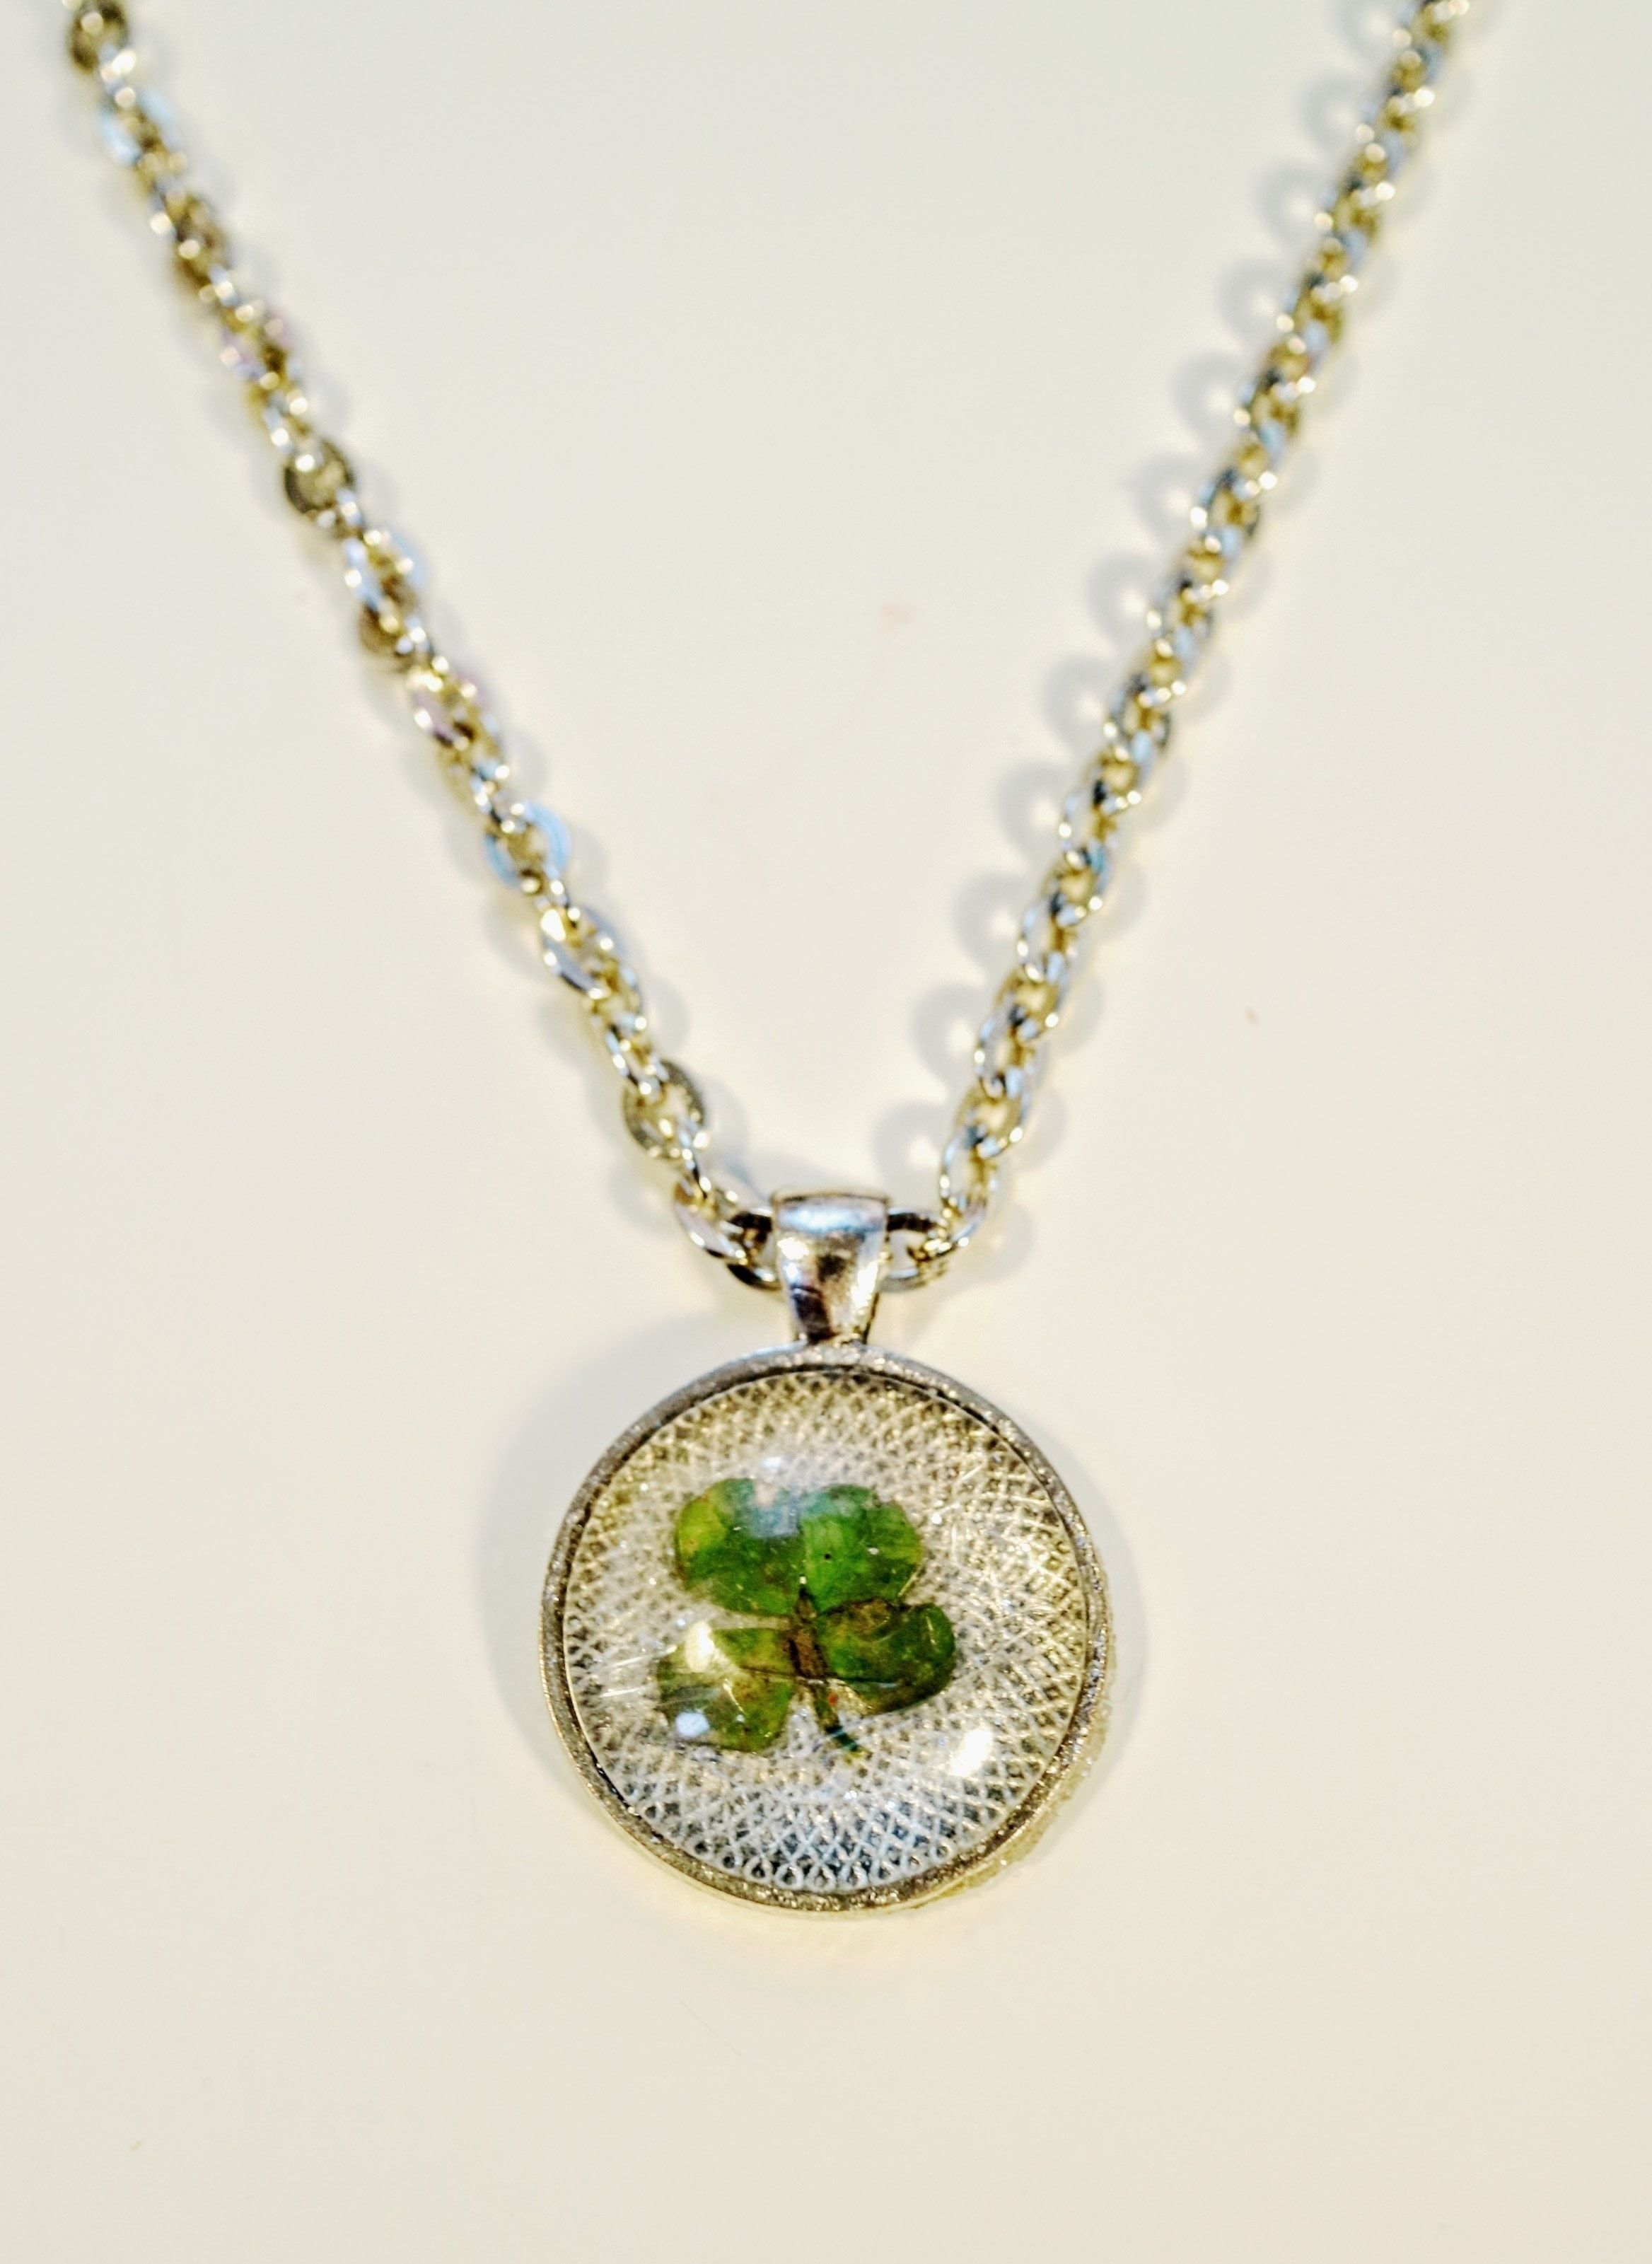 necklaces fred four diamond paris pendant of jewelry clover enlarged necklace leaf products